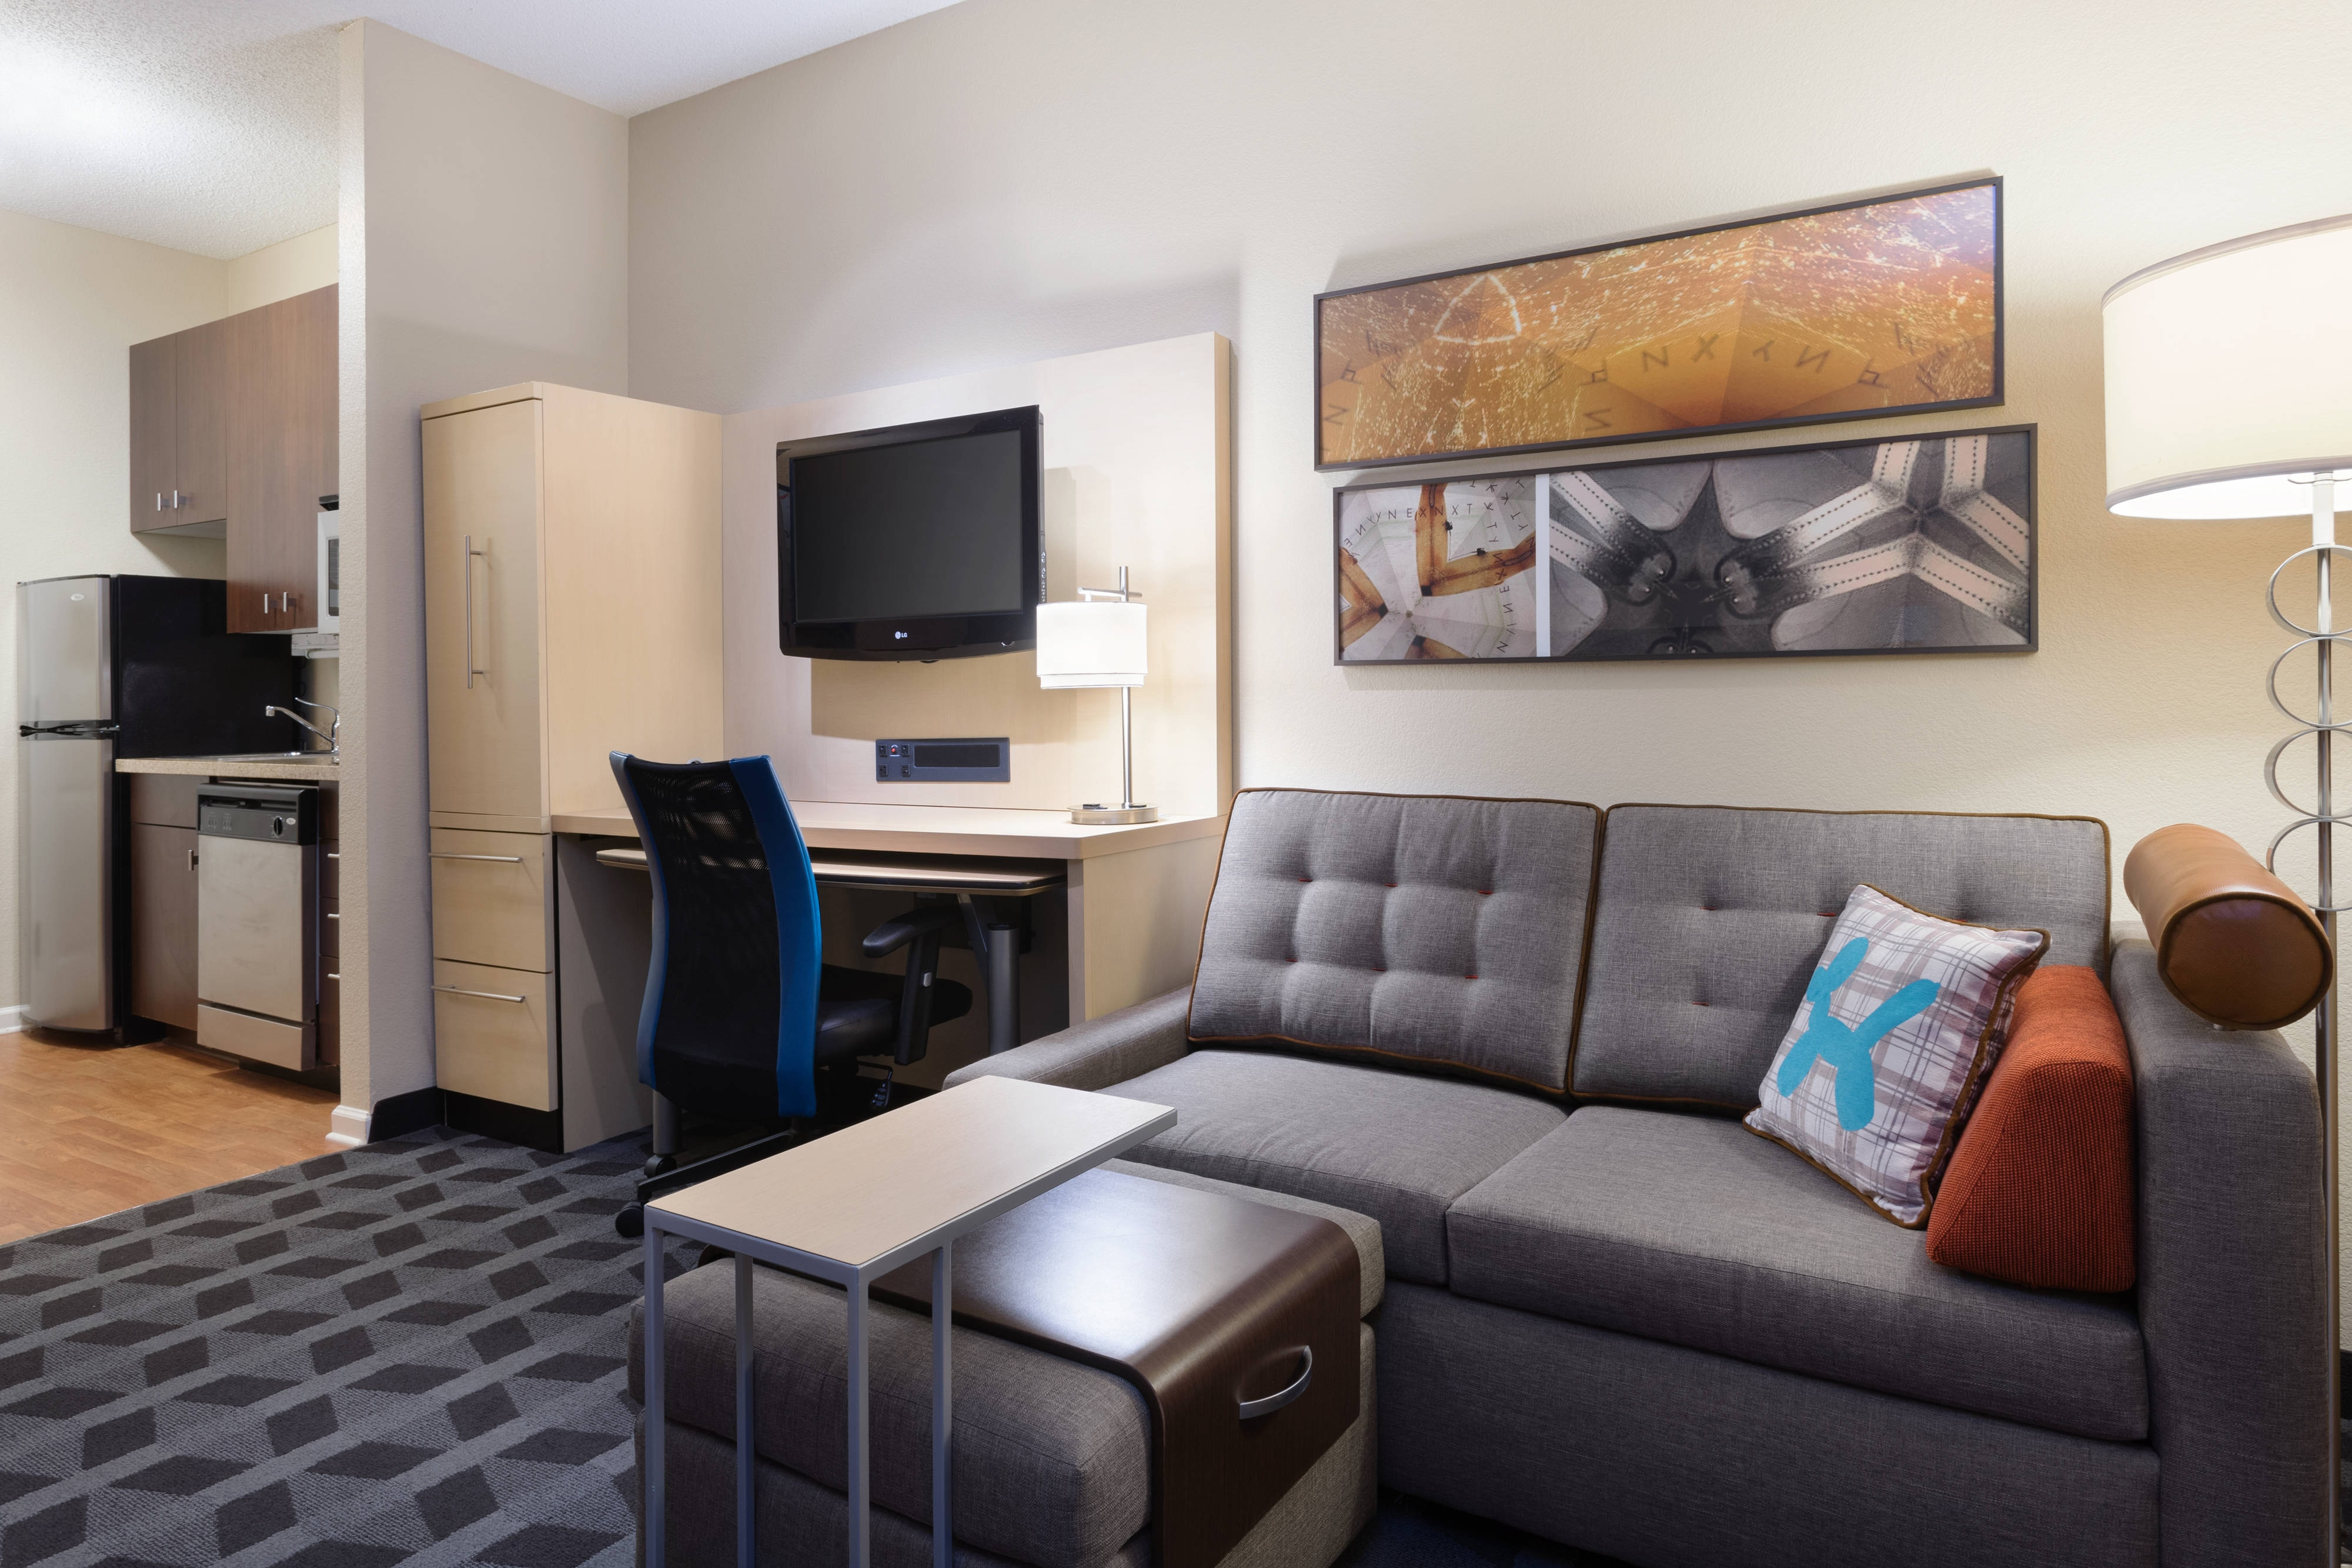 Shvts Towneplace Suites Shreveport Bossier City on Towneplace Suites Room Floor Plans